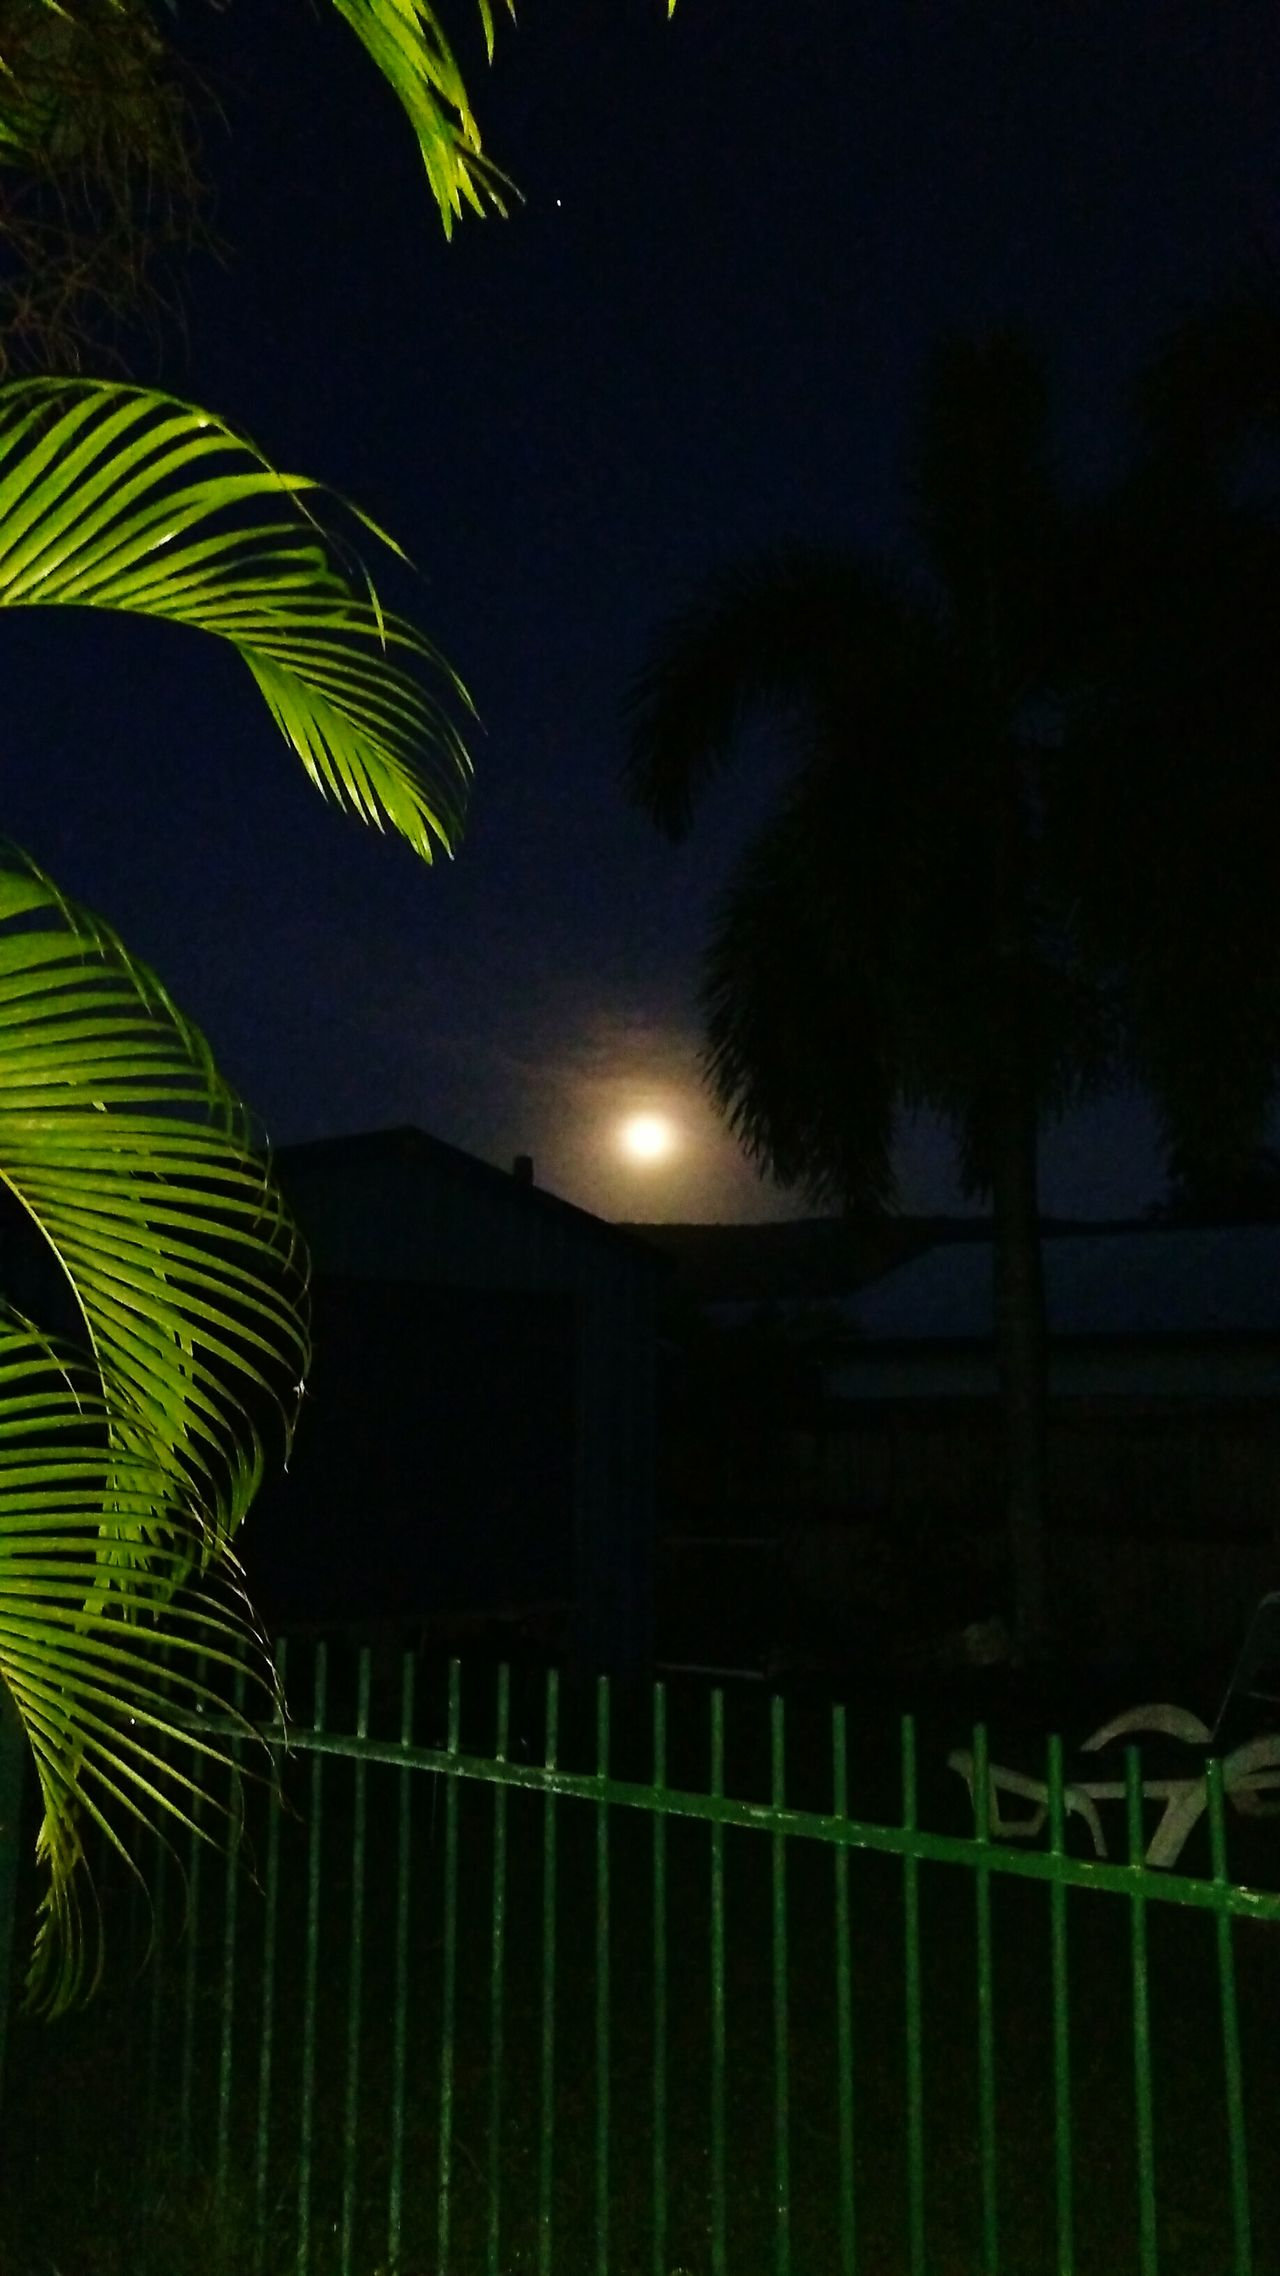 Outdoors, Outside, Open-air, Air, Fresh, Fresh Air, Night No People Moon Beauty In Nature Neighborhood Sky Palm Tree Garden